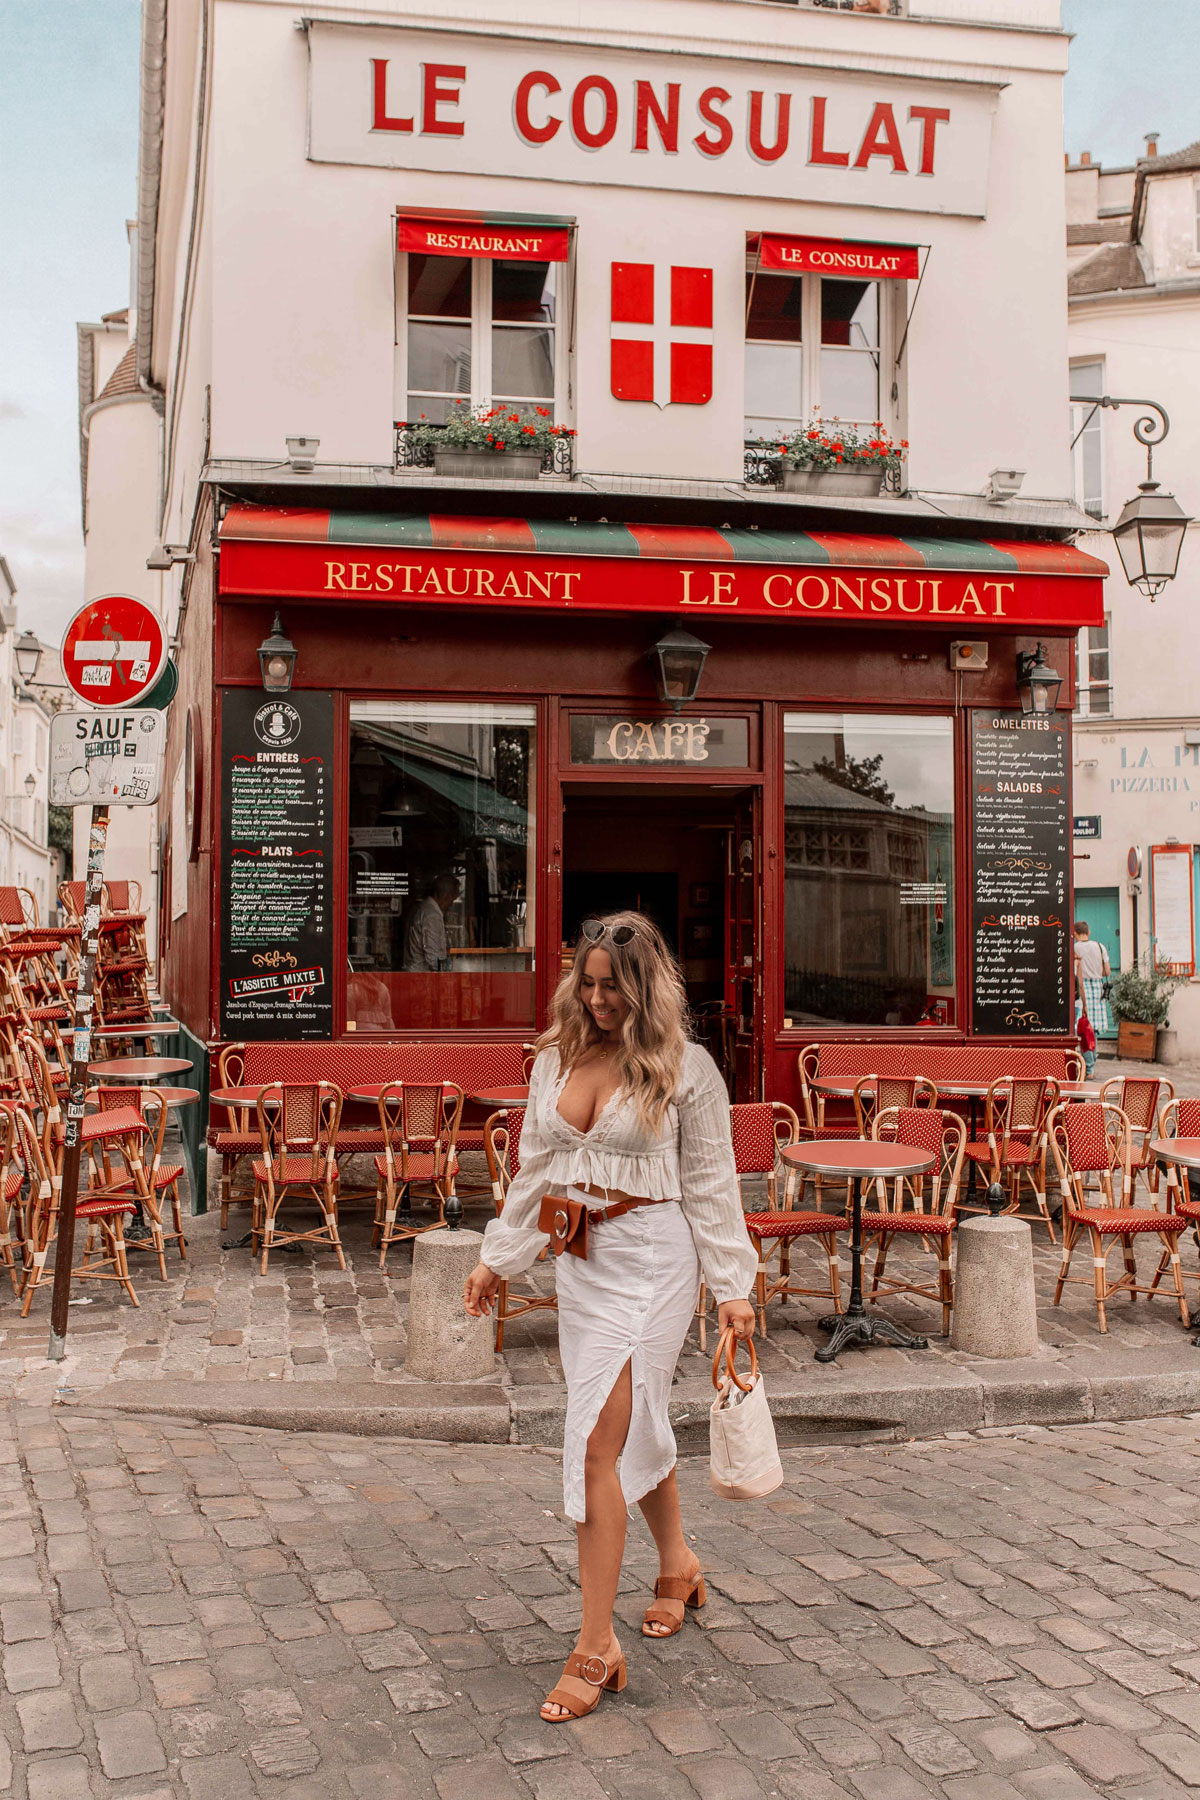 20-Best-Paris-Photography-Locations-Instagram-Spots-Pink-Mamma-@kelseyinlondon-Kelsey-Heinrichs--Le-Consulat-Restaurant